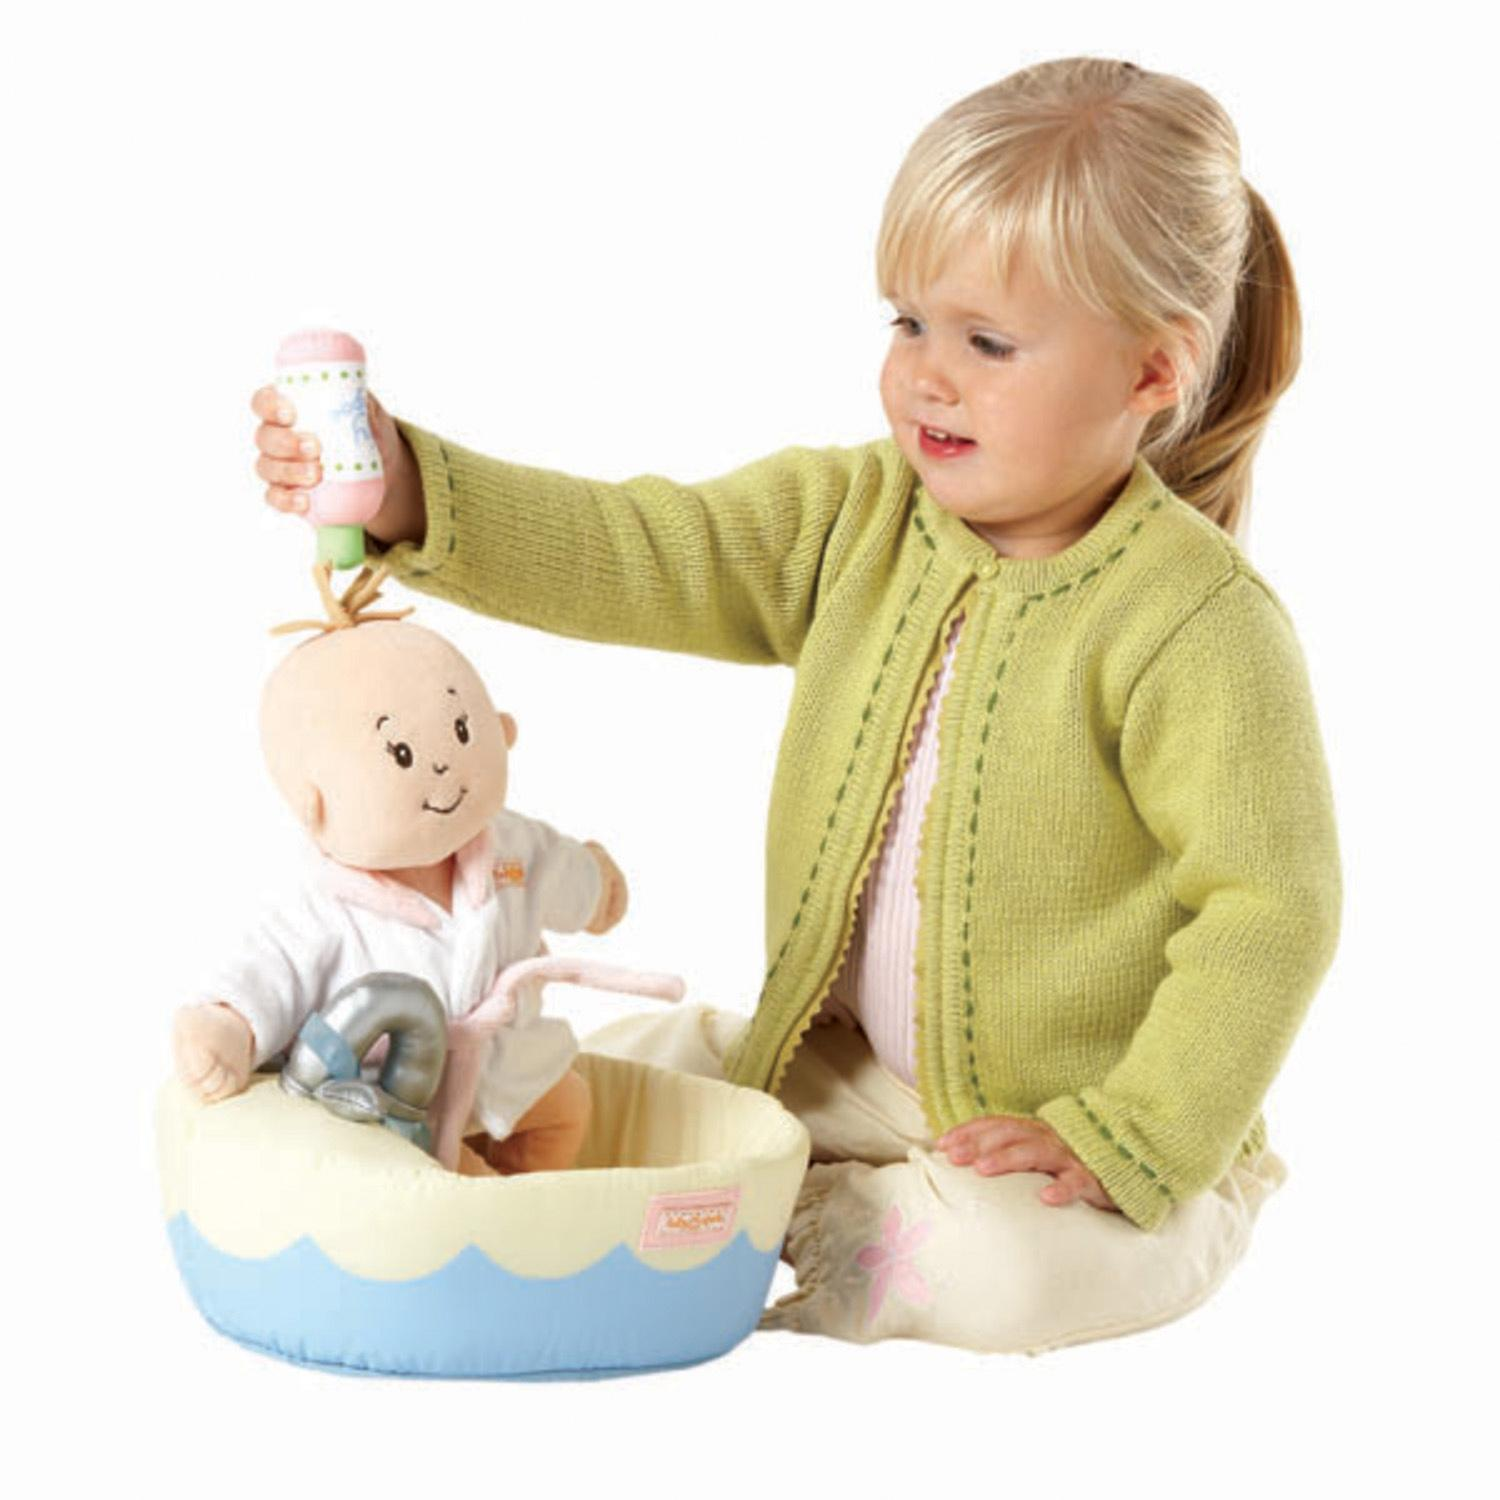 Baby Toys Age 4 : Manhattan toy baby stella blonde soft nurturing first